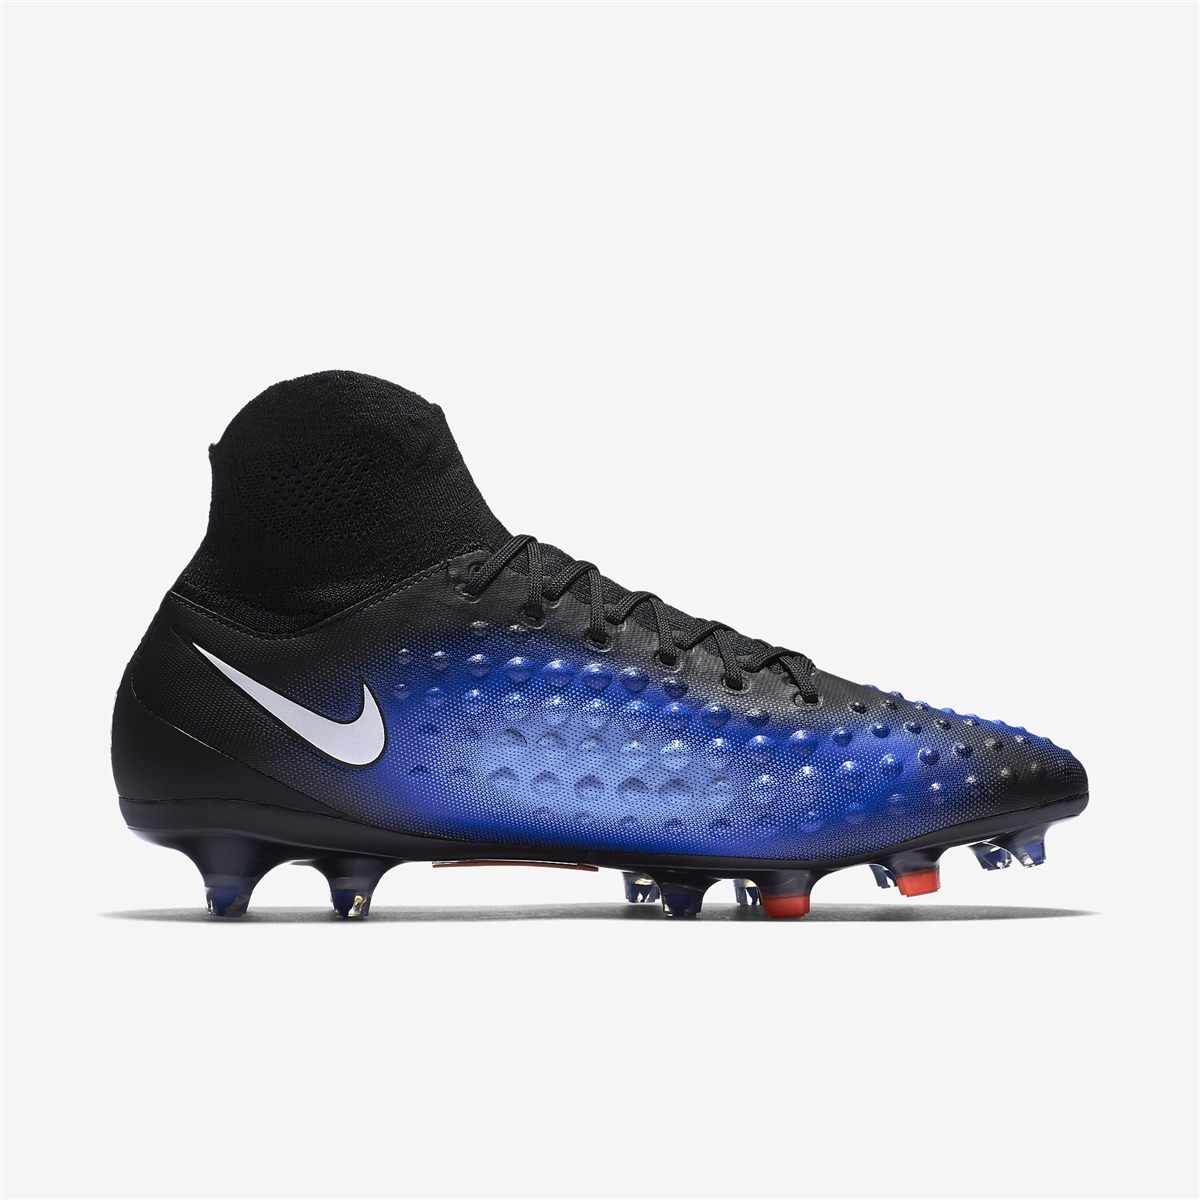 875e45fd2023 Nike Magista Orden II FG Soccer Cleats (Black White Paramount Blue ...